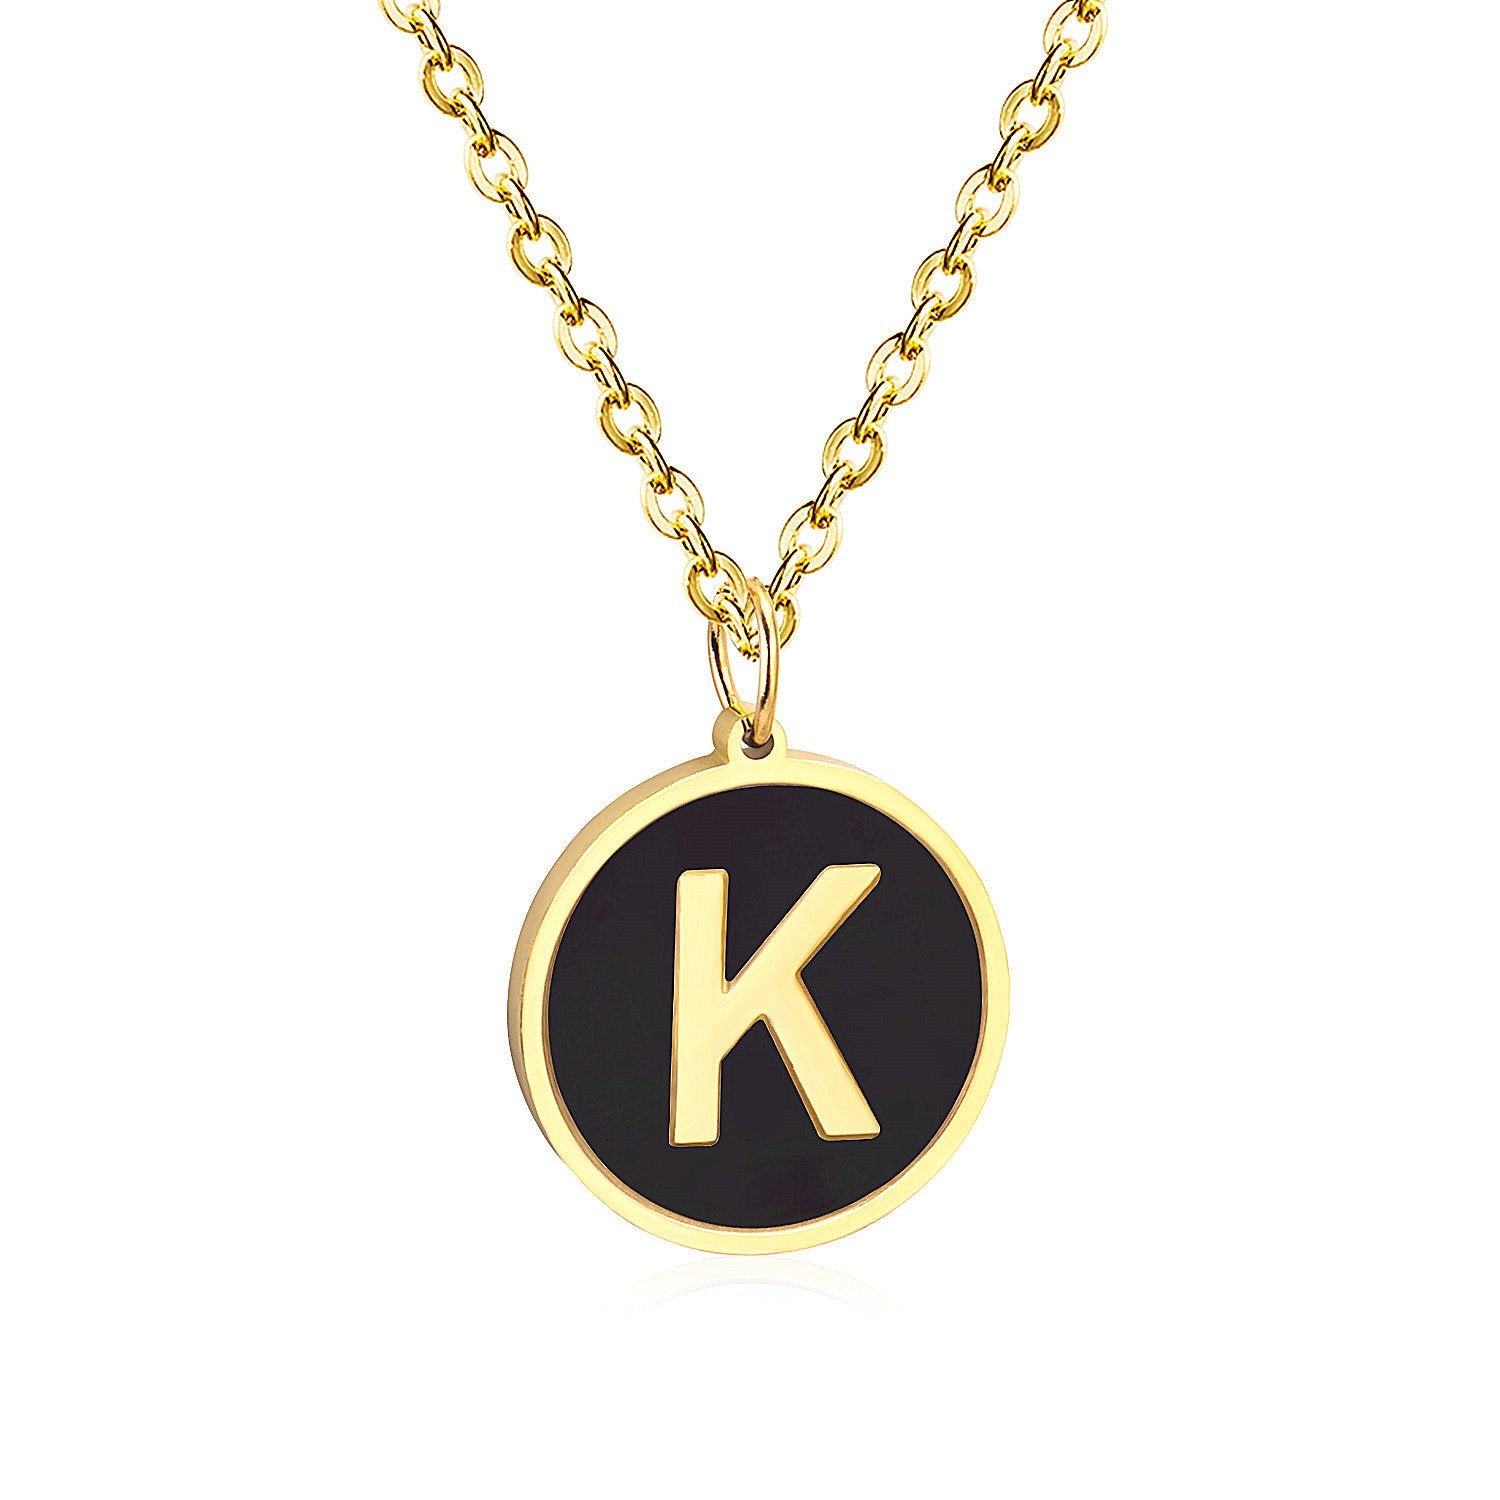 Golden English alphabet pendant